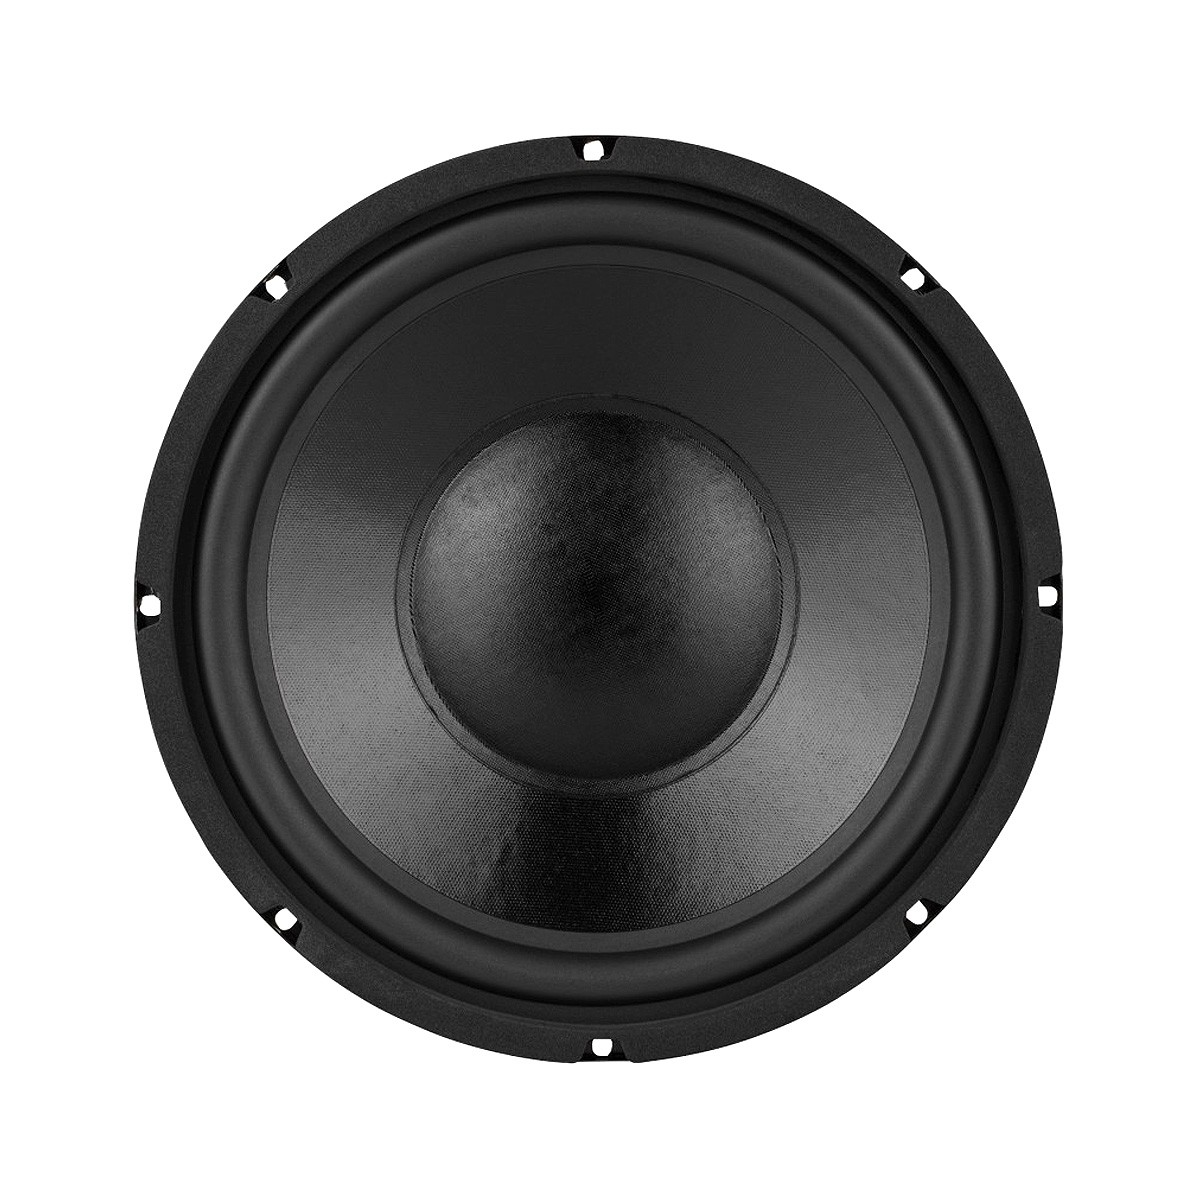 DAYTON AUDIO DCS305-4 Subwoofer Speaker 4 Ohm Ø30.5cm